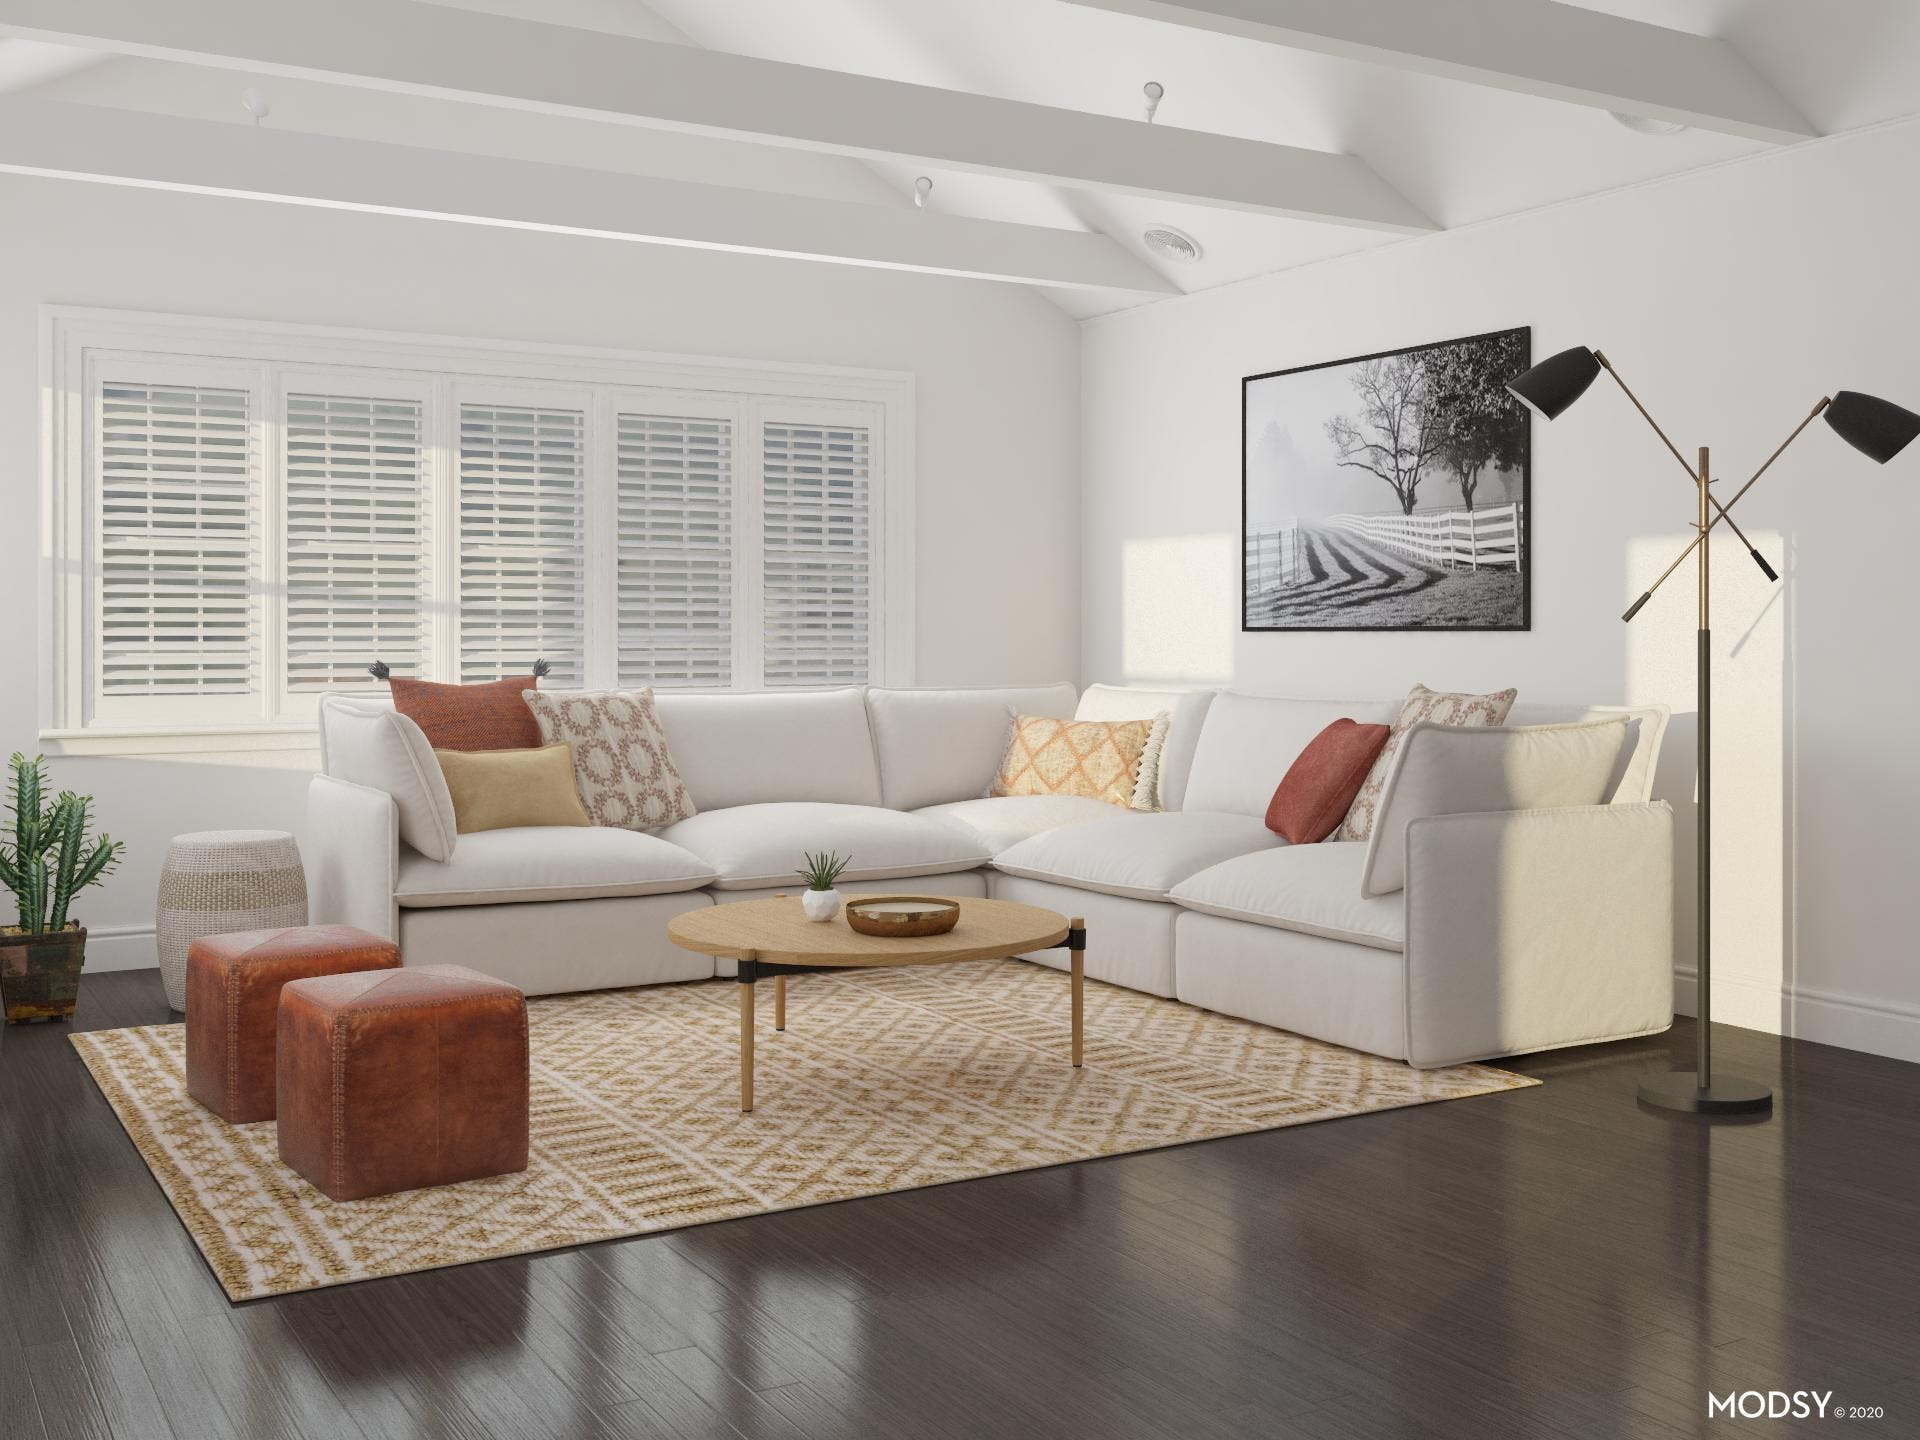 Mid-Size Patterned Rug Adds Pattern to Comfy Contemporary Living Room